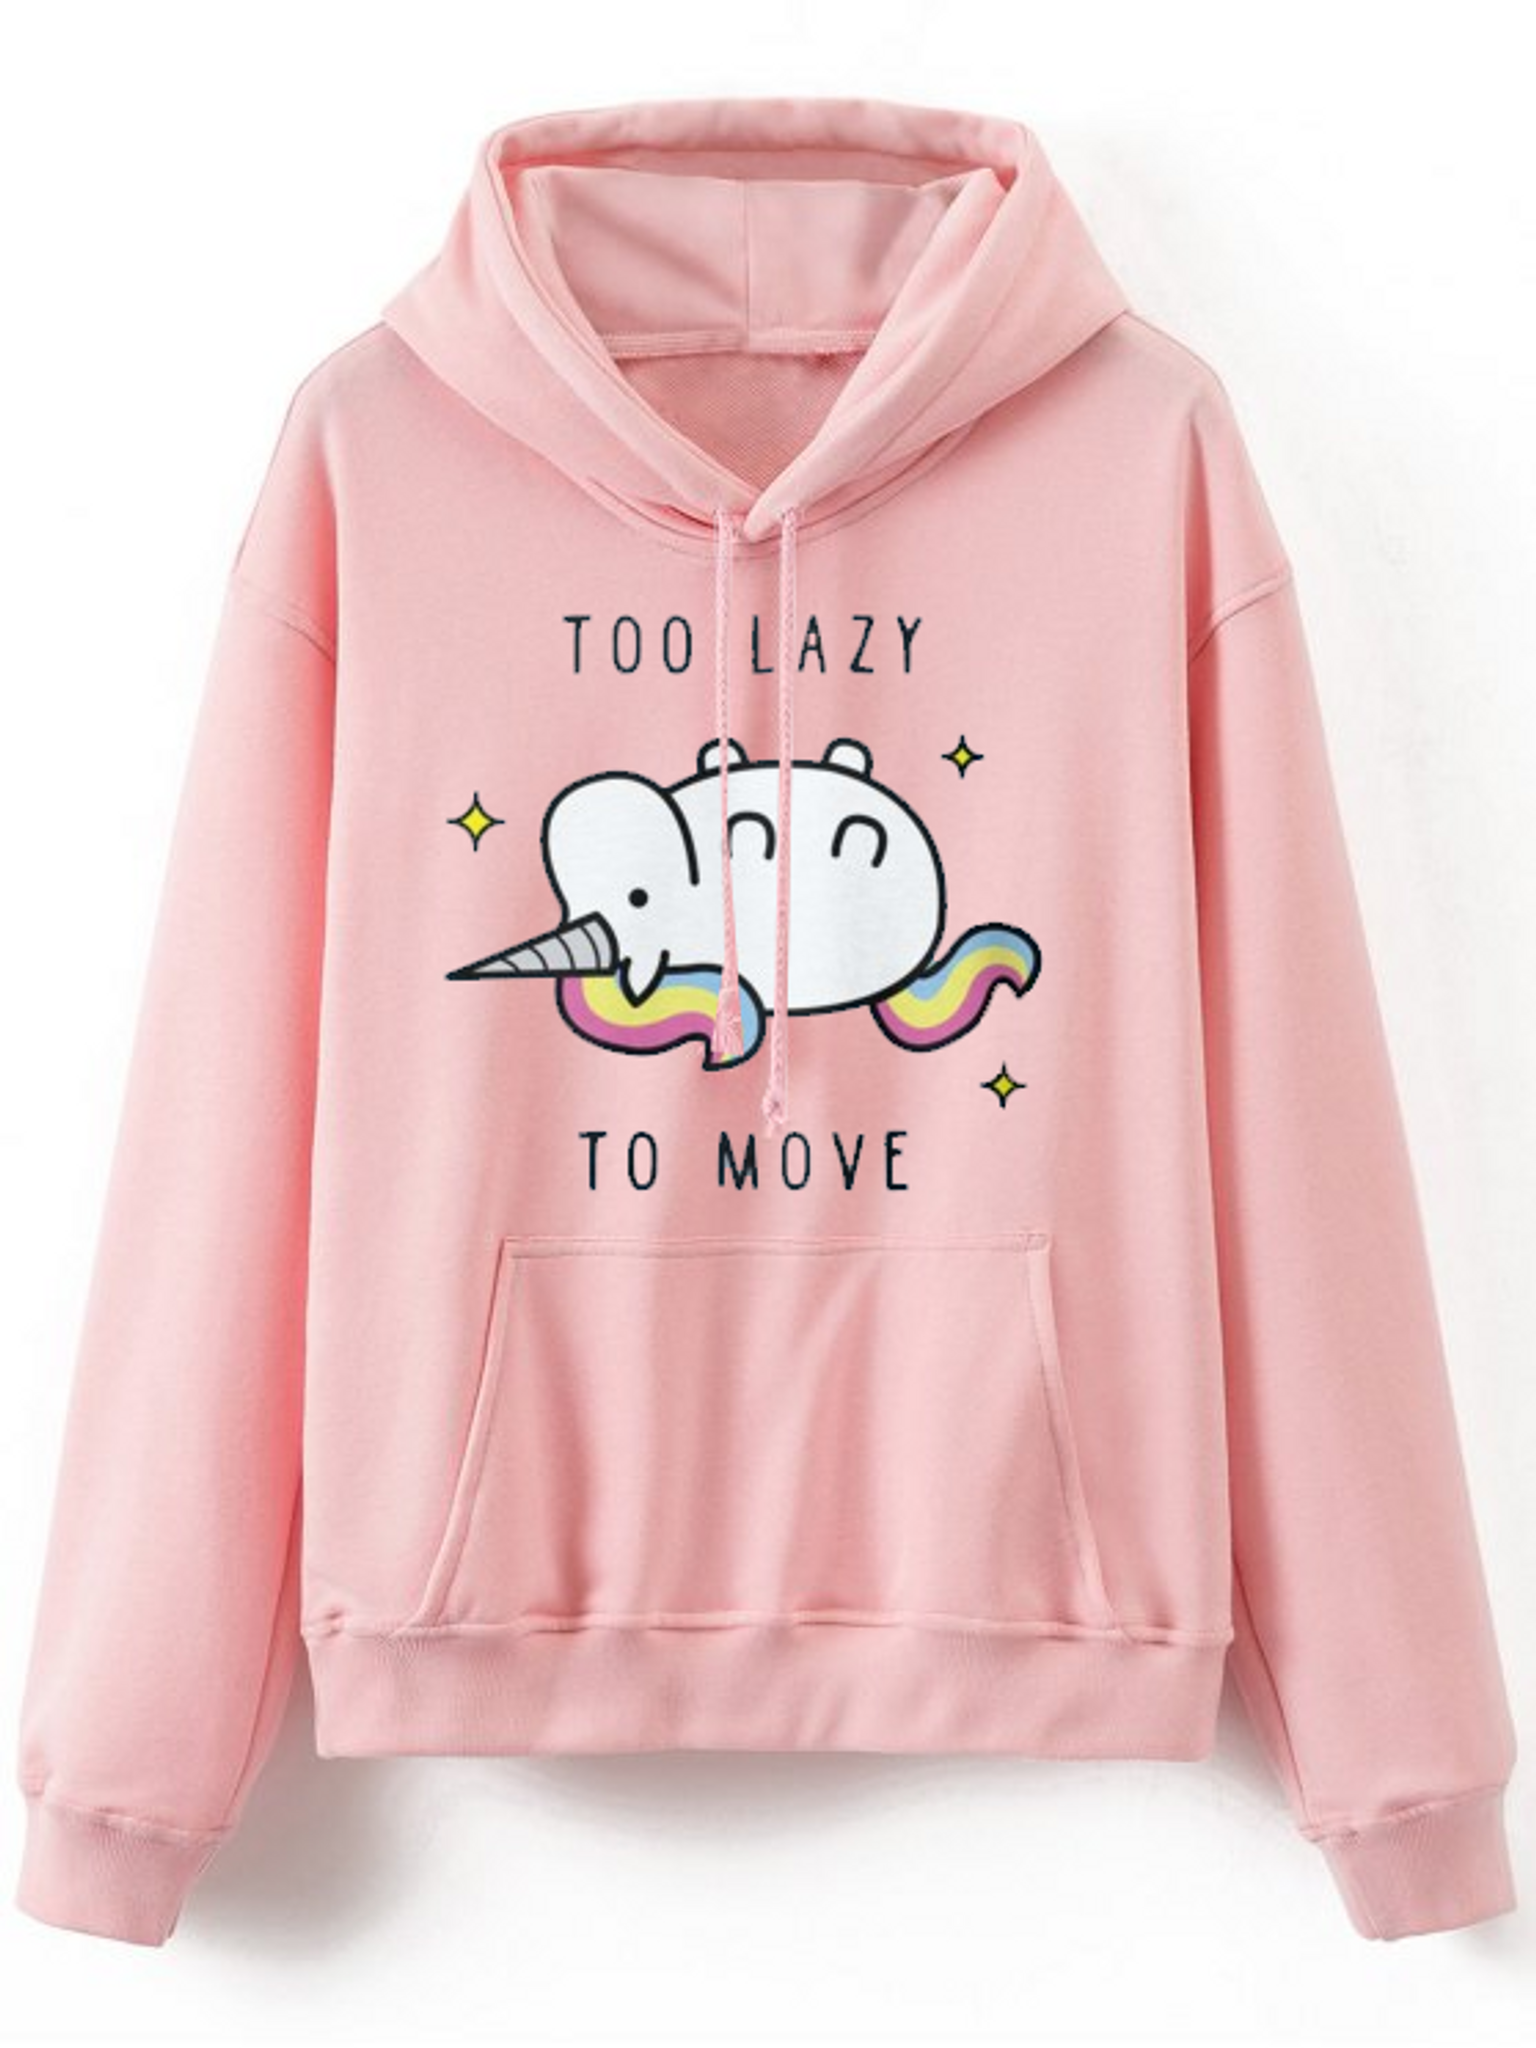 Fifth Avenue Too Lazy To Move Unicorn Print Hoodie - Pink